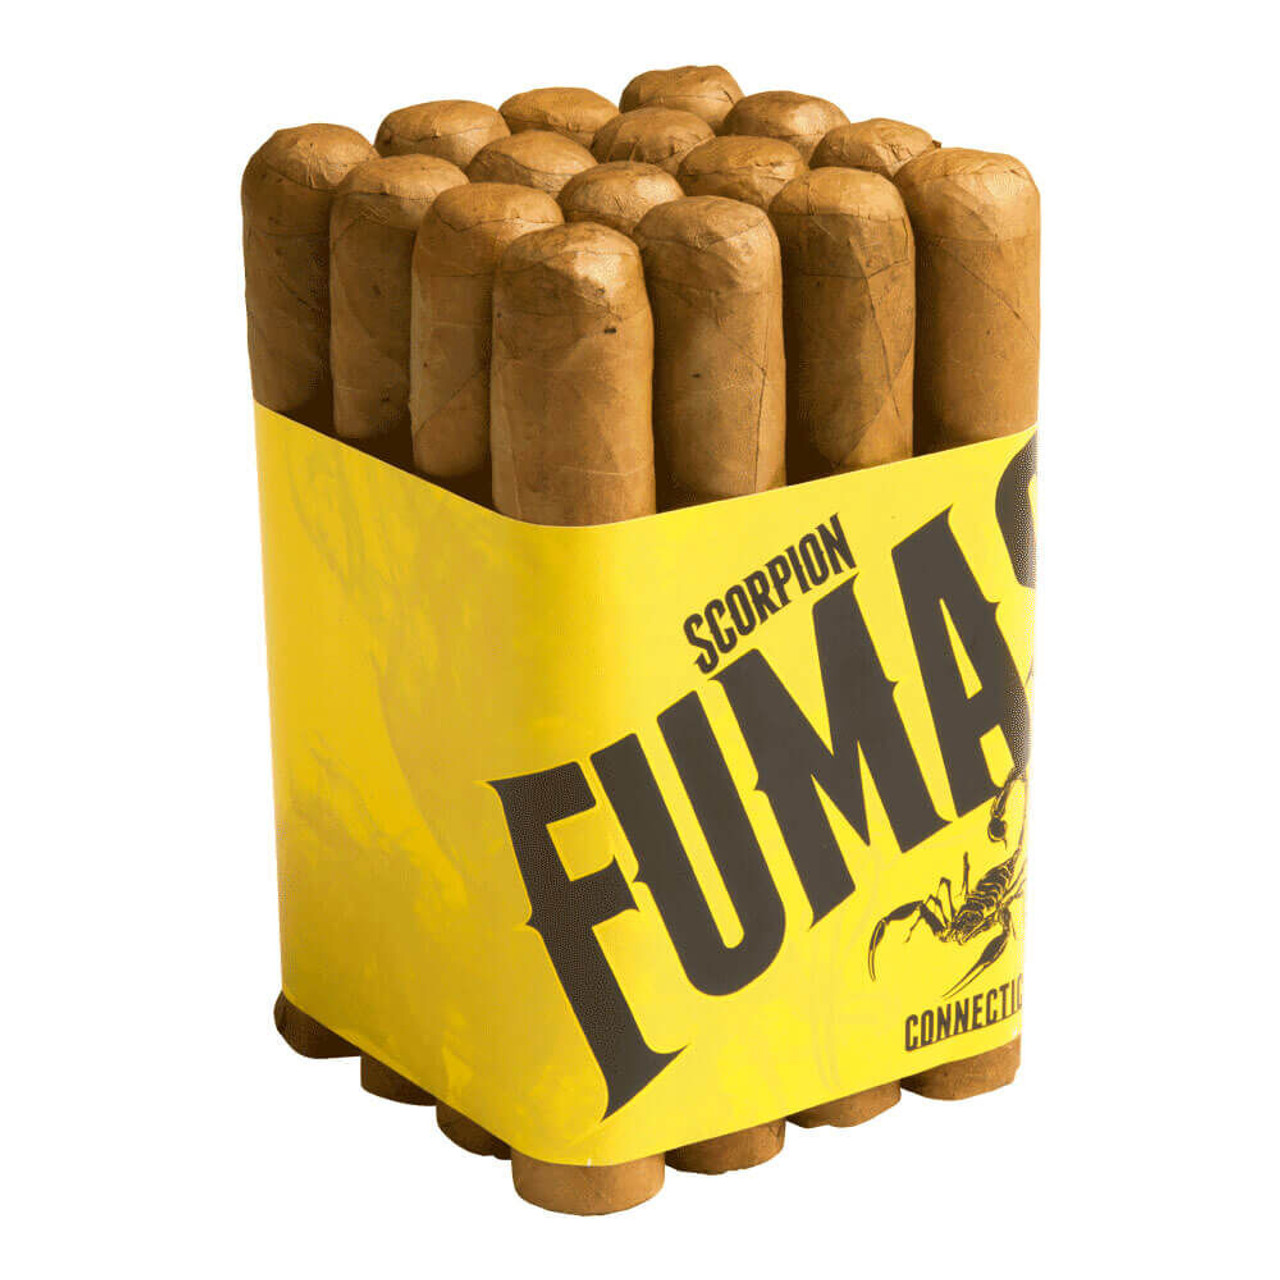 Camacho Scorpion Fumas Connecticut Gordo Cigars - 6 x 60 (Bundle of 16)